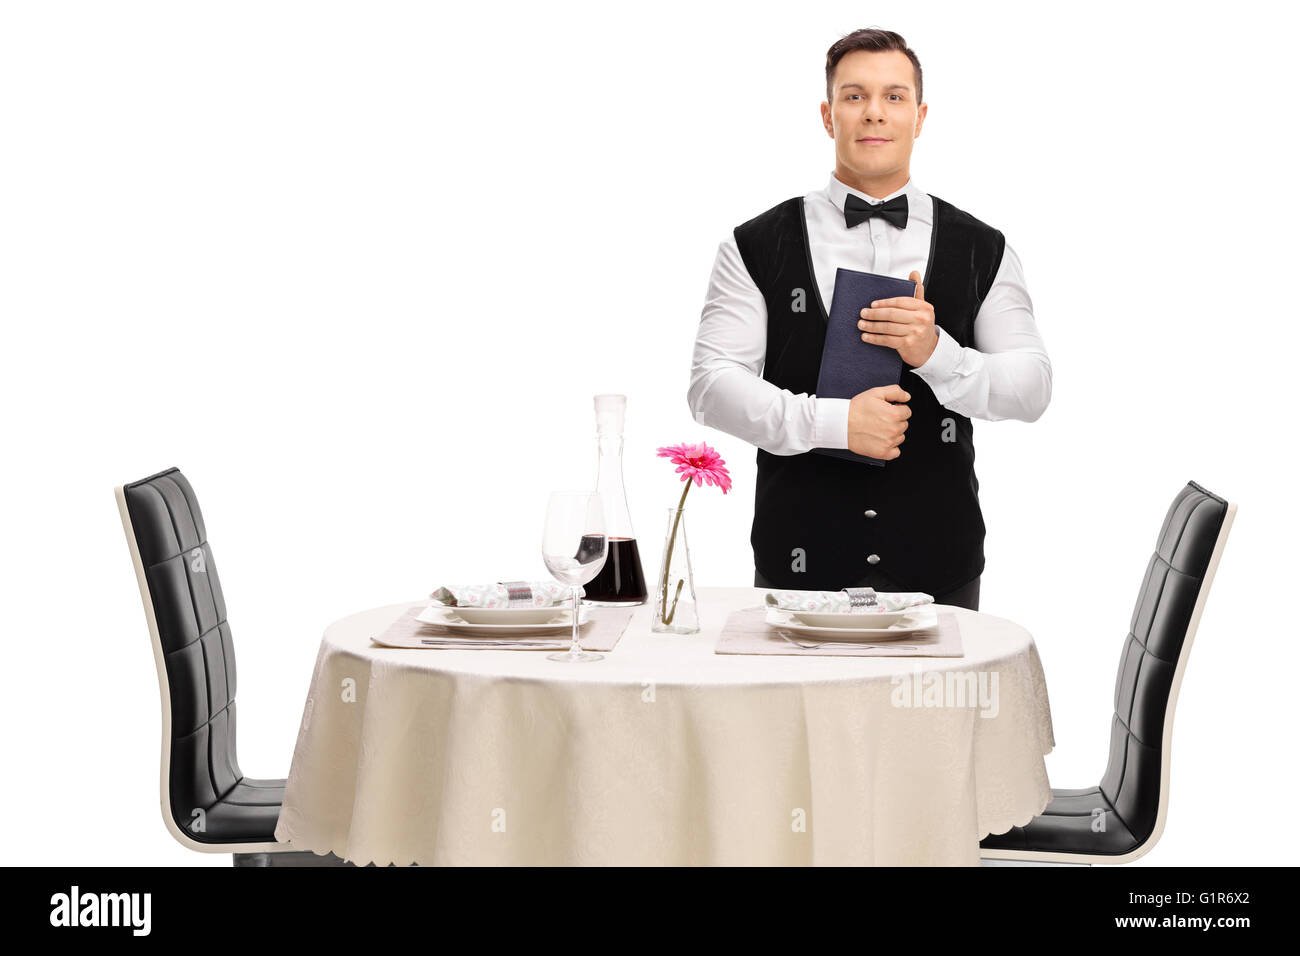 Young restaurant waiter